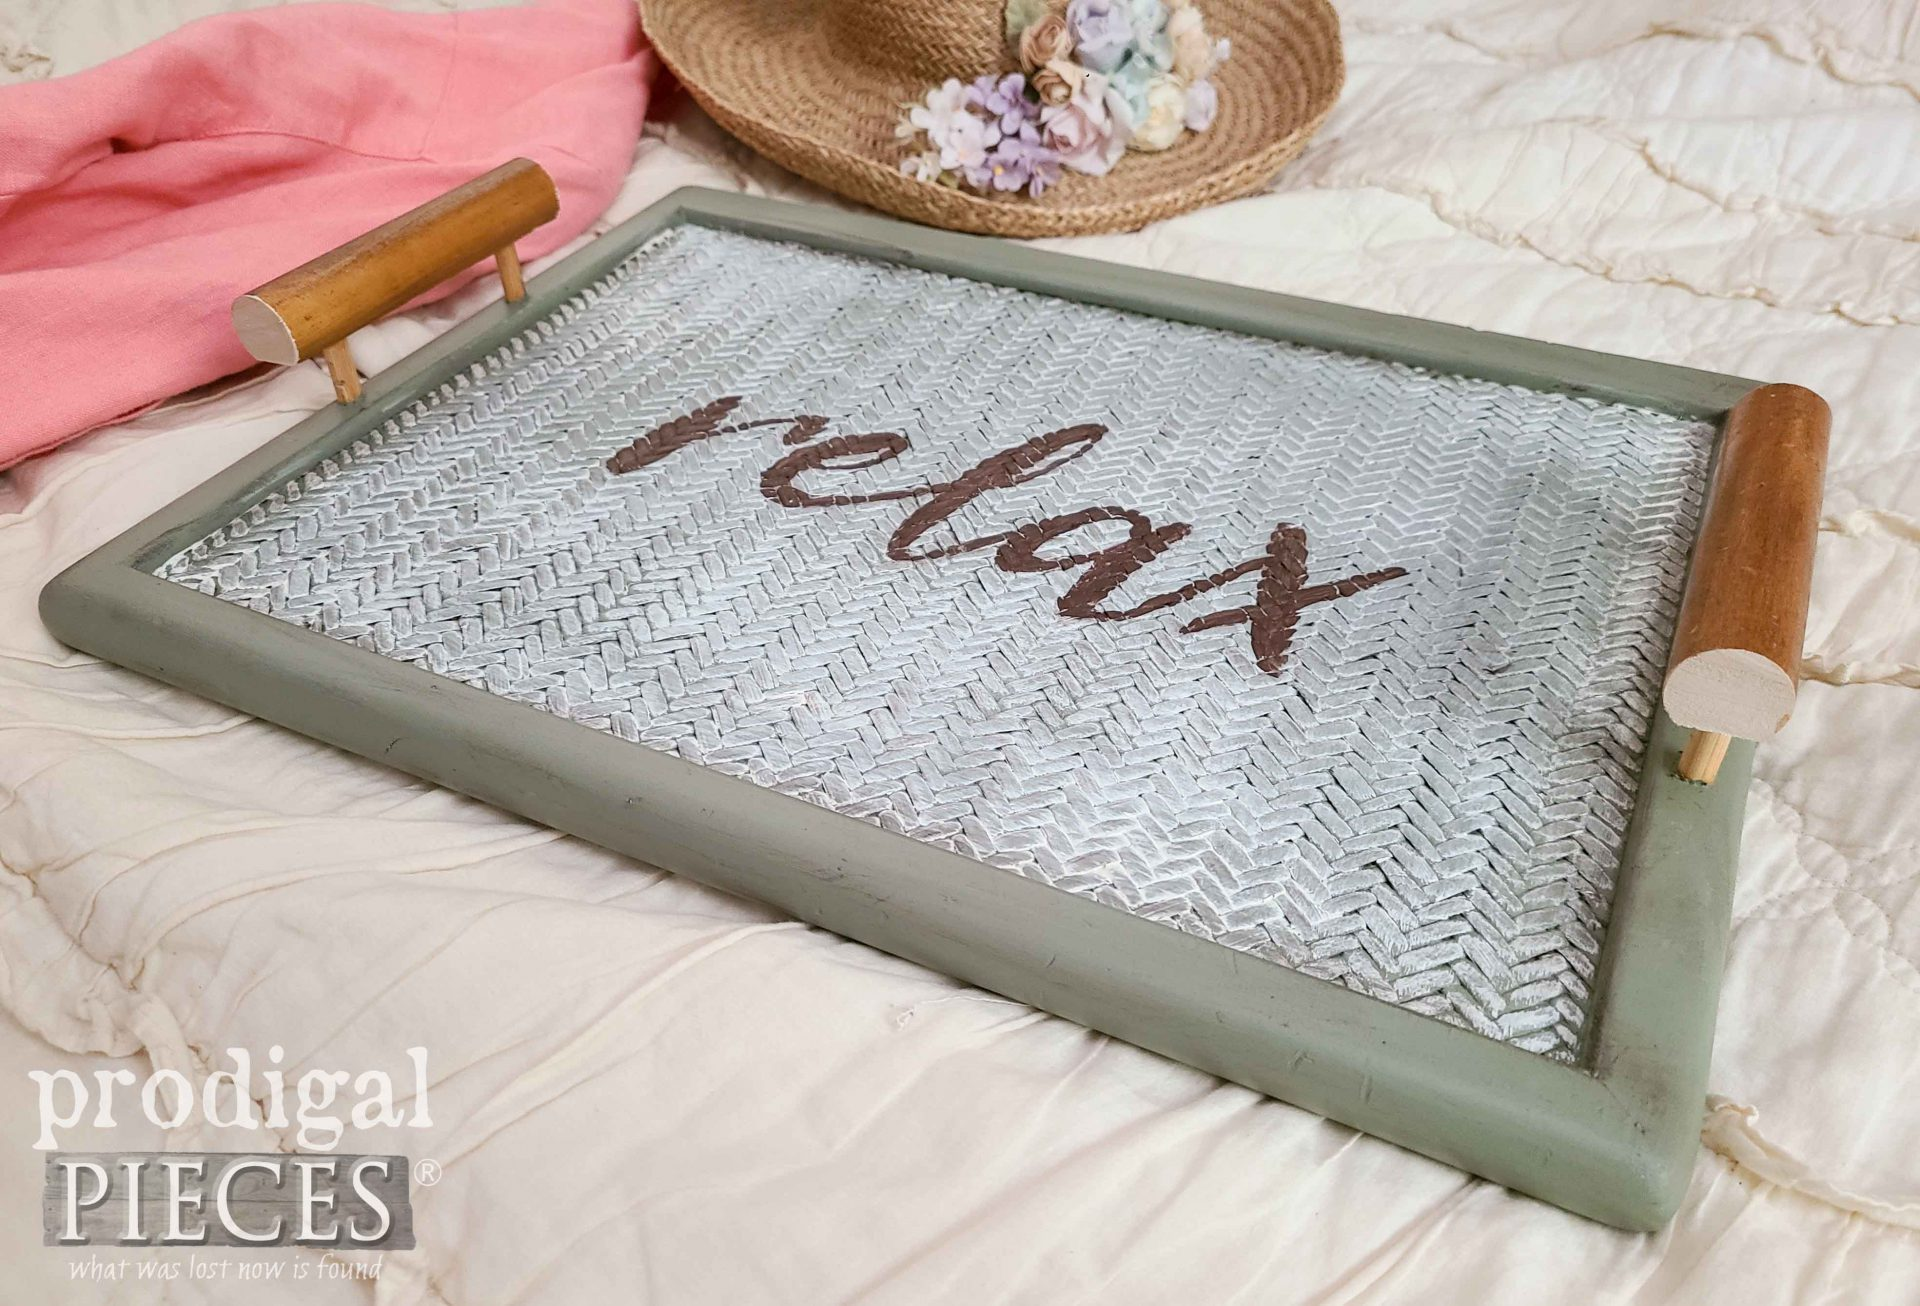 Vintage Style Serving Tray made by Larissa of Prodigal Pieces | prodigalpieces.com #prodigalpieces #diy #home #homedecor #farmhouse